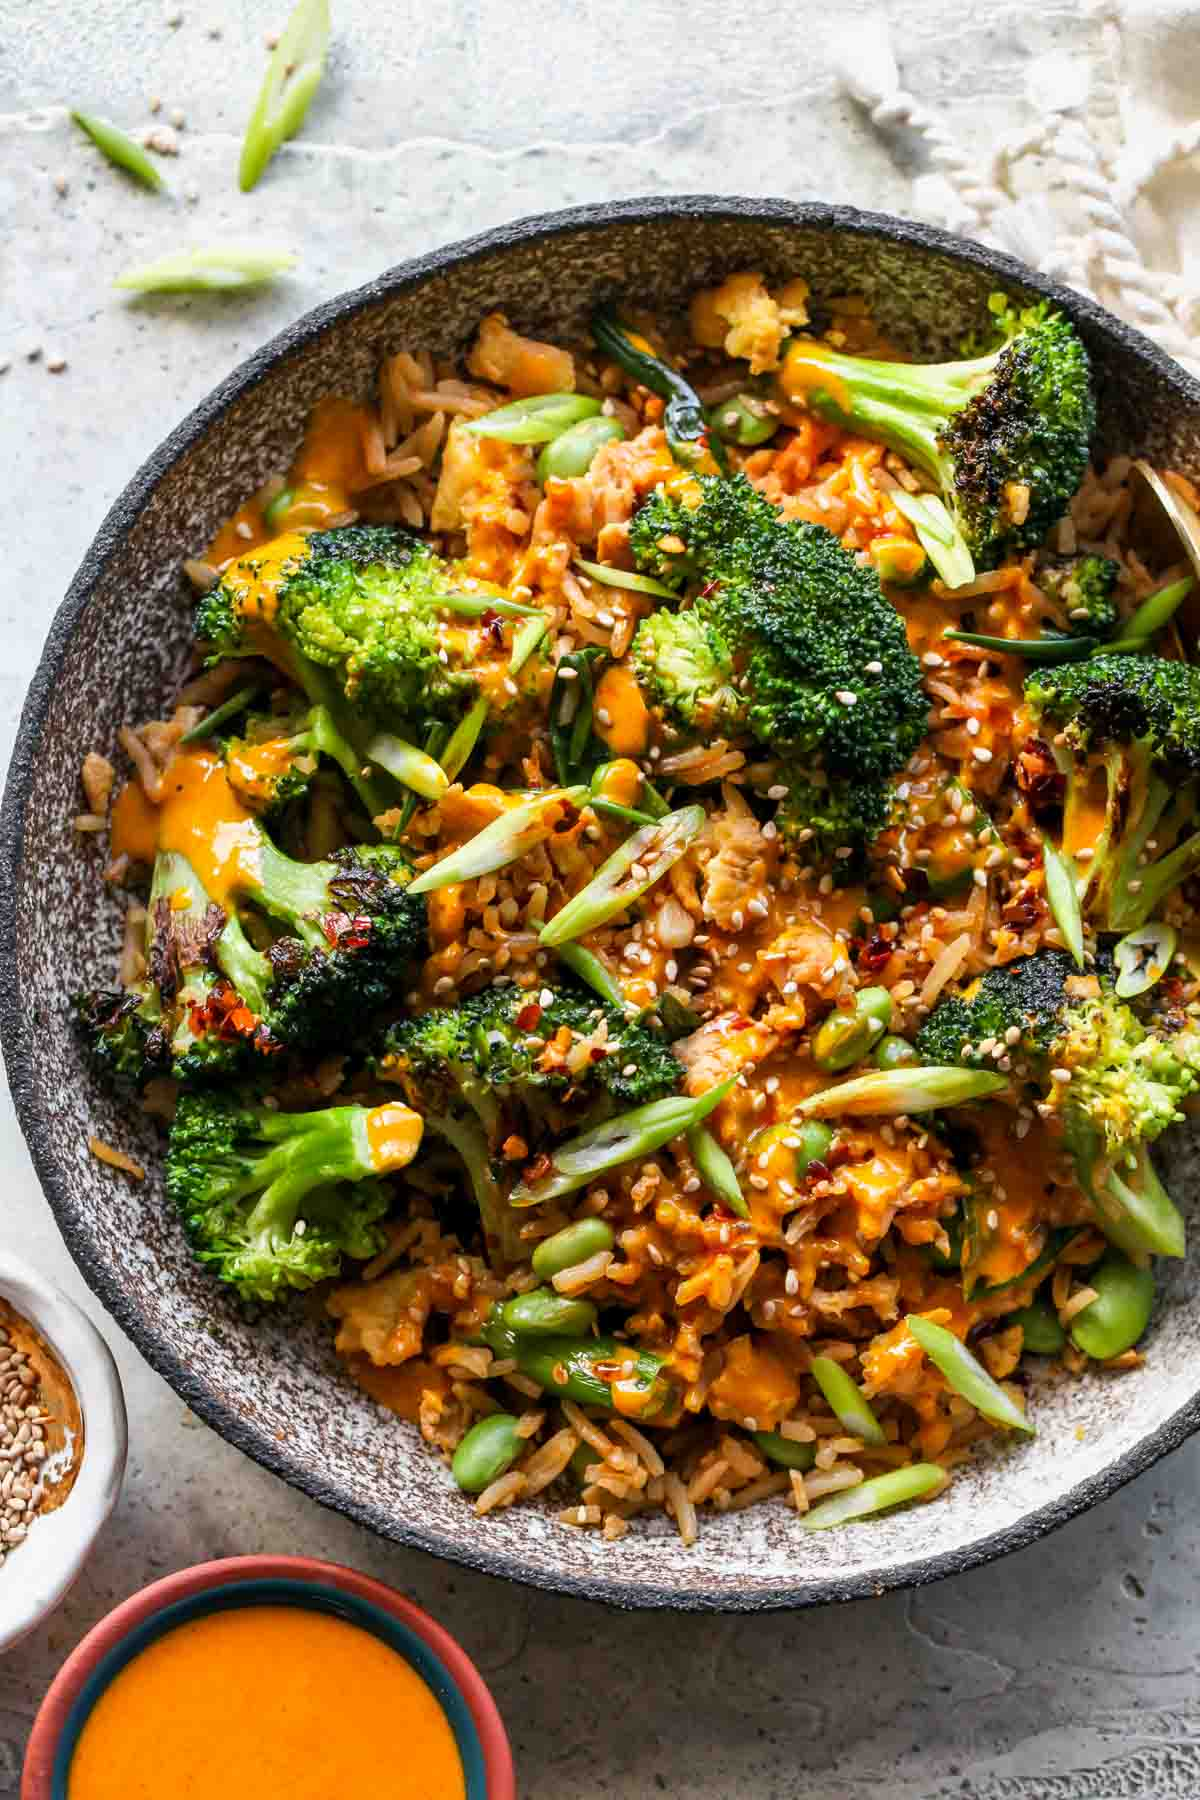 Broccoli, fried, rice, and sesame seeds in a bowl